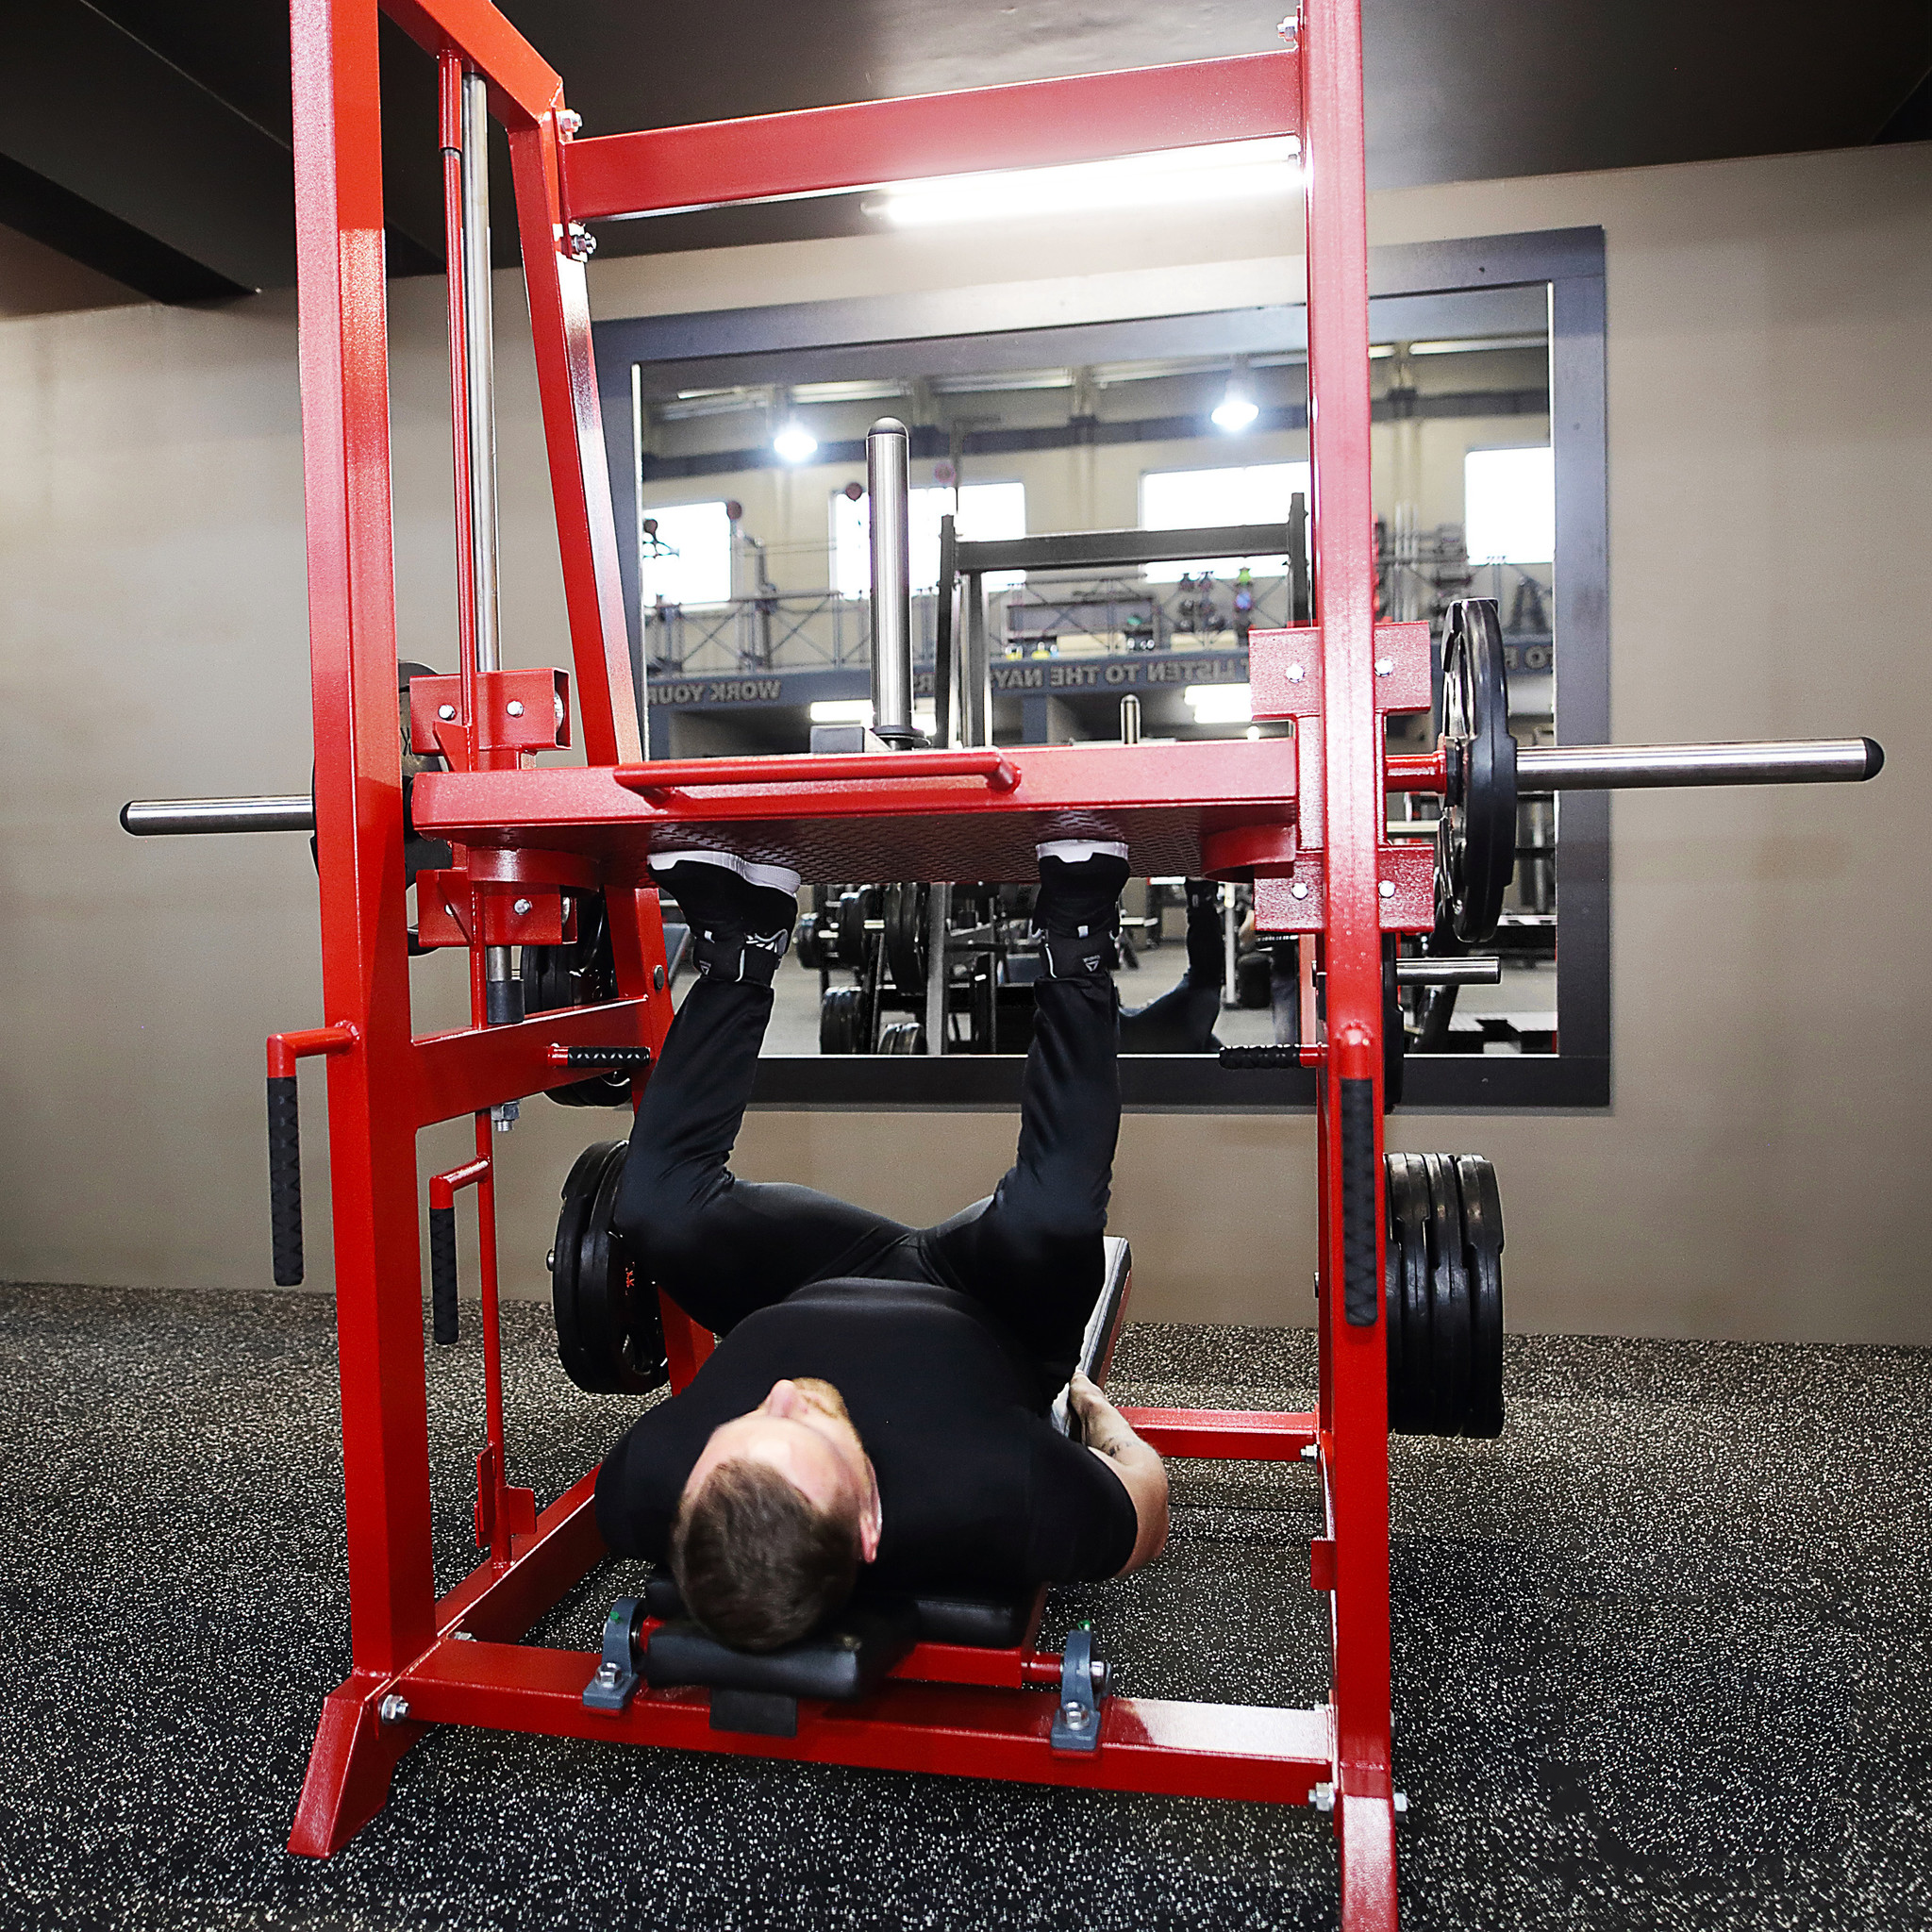 Vertical Leg Press machines are another type of Leg Press machines